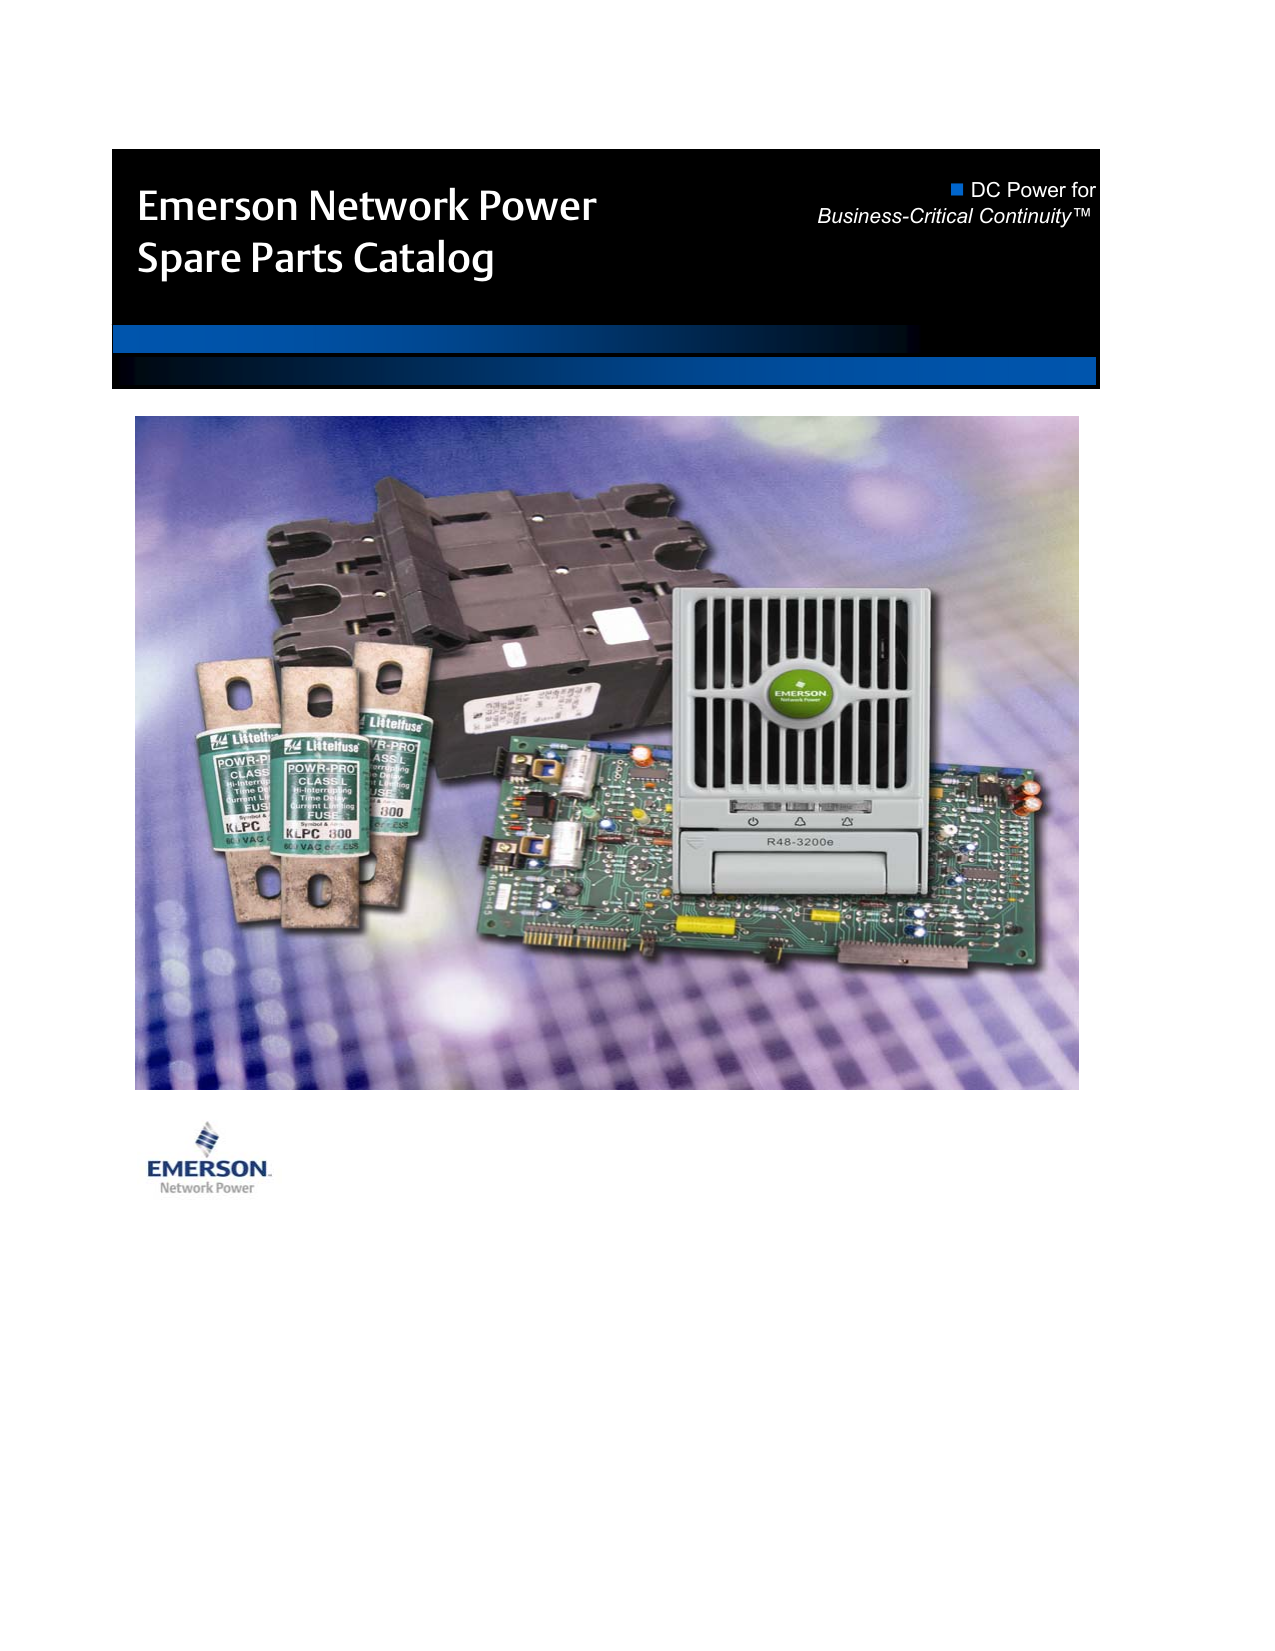 Emerson Network Power Spare Parts Catalog Dc For Dummies Guide To Building A Vortex Electrical Wiring Harness